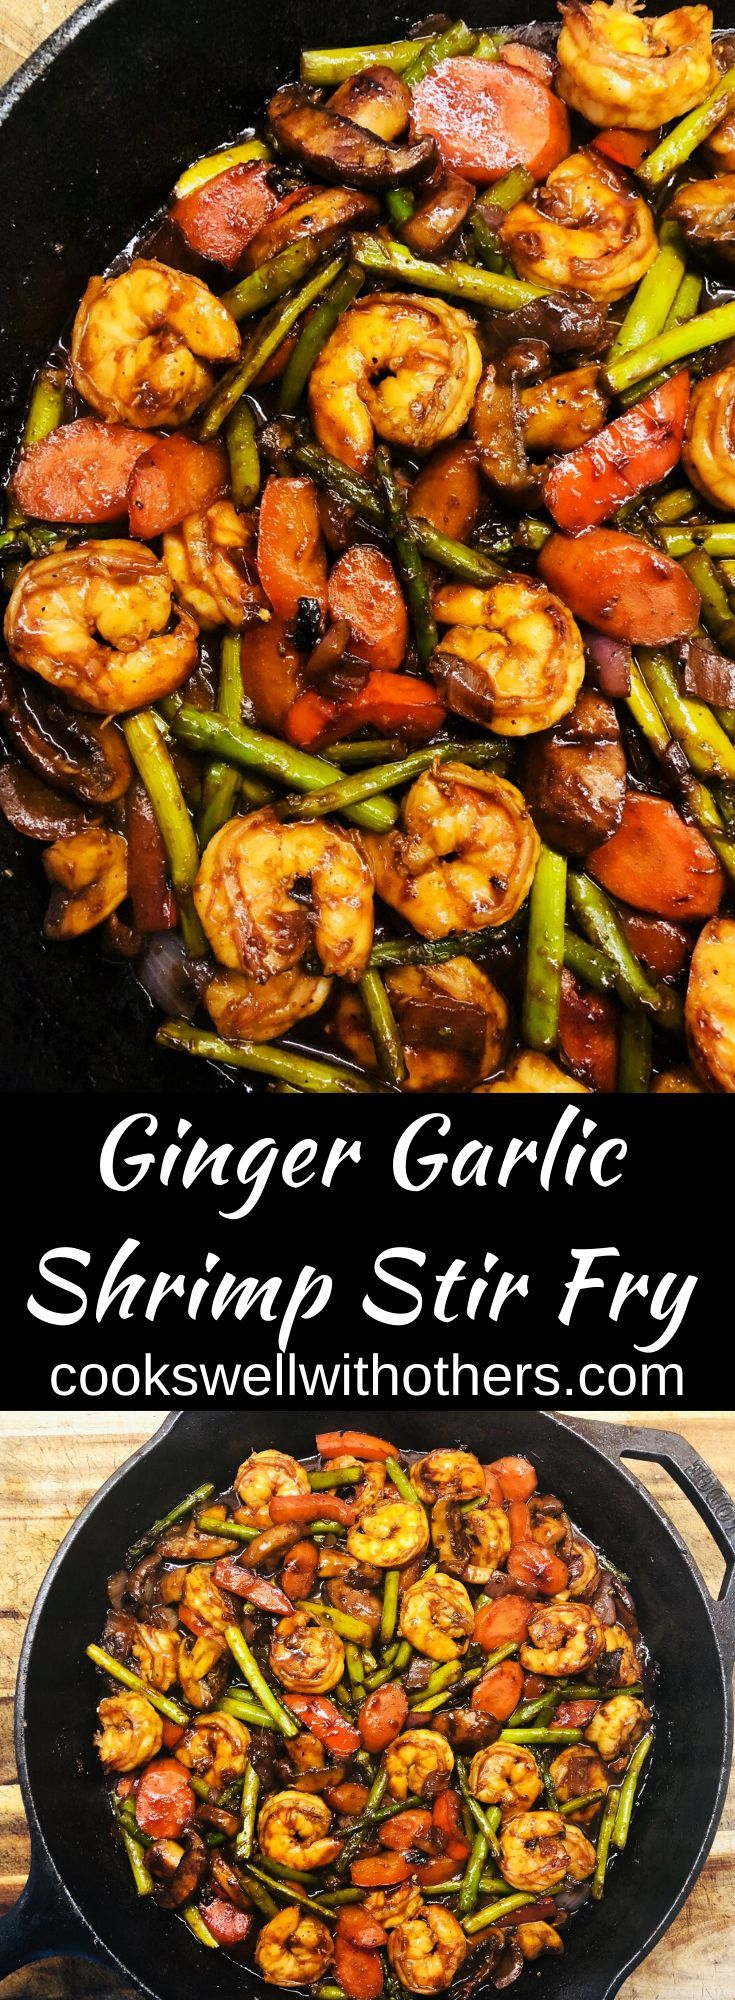 Ginger Garlic Shrimp Stir Fry